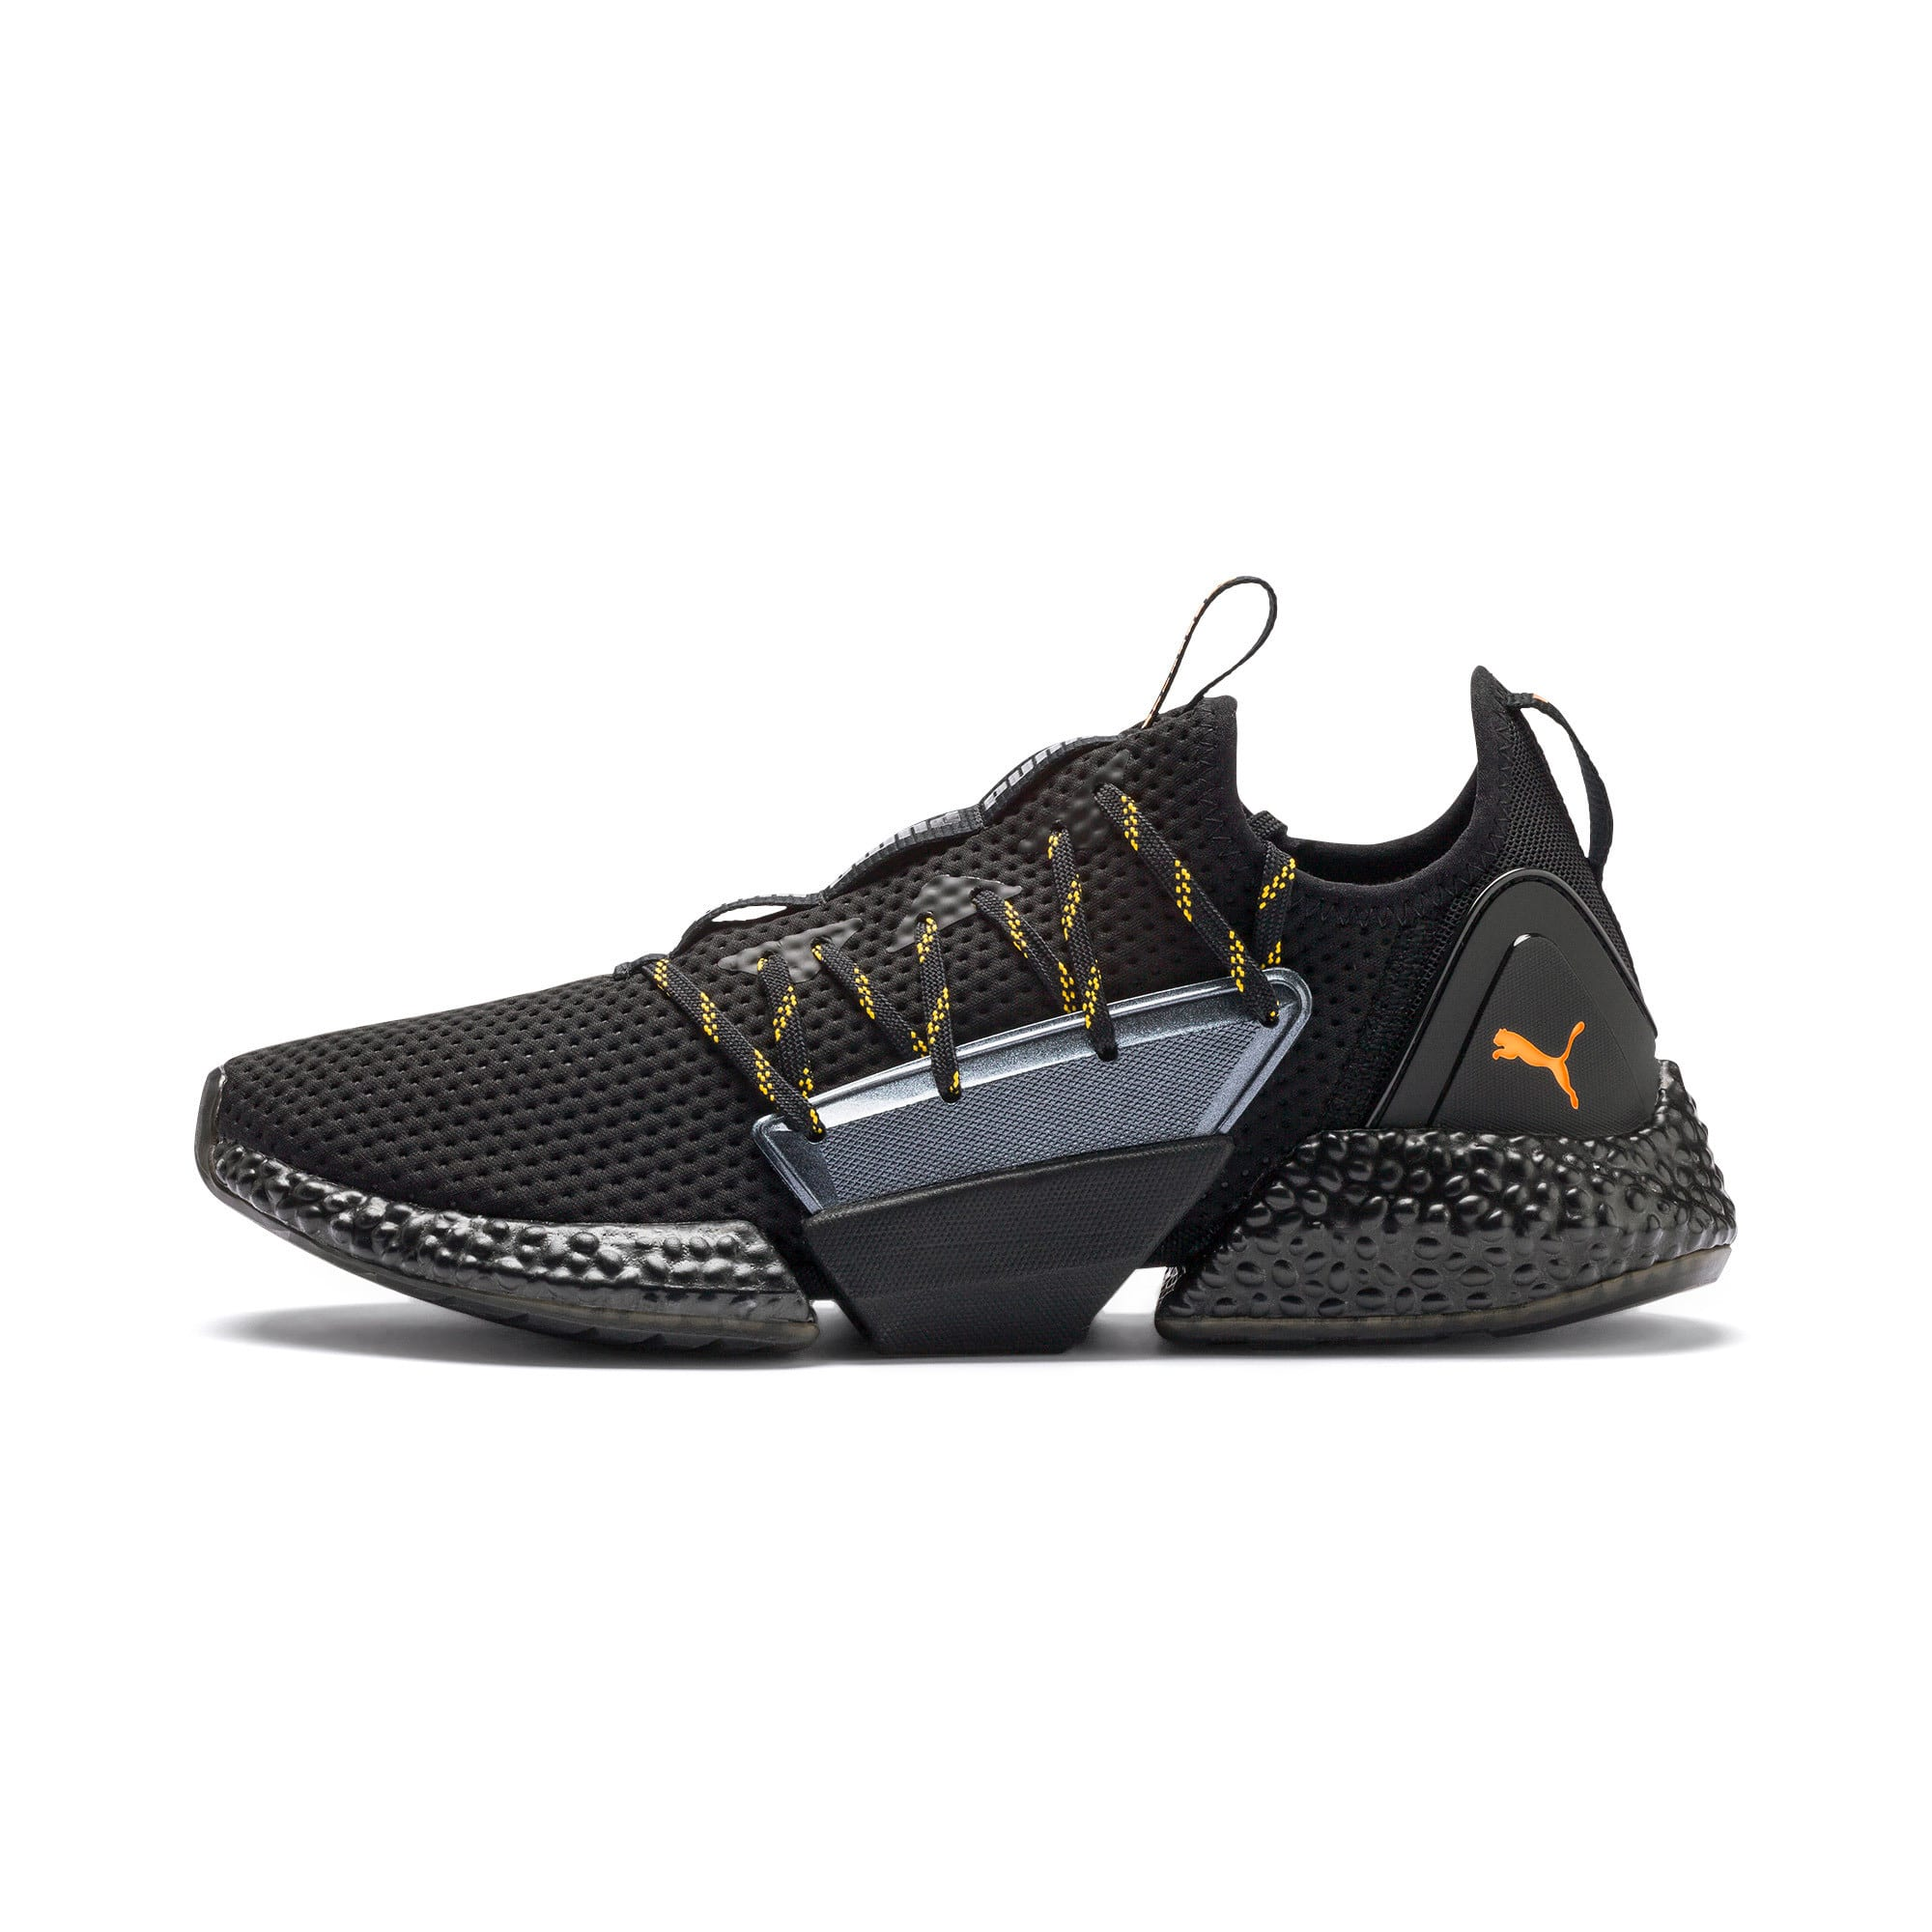 Thumbnail 1 of HYBRID Rocket Aero Men's Sneakers, Puma Black-Puma Black, medium